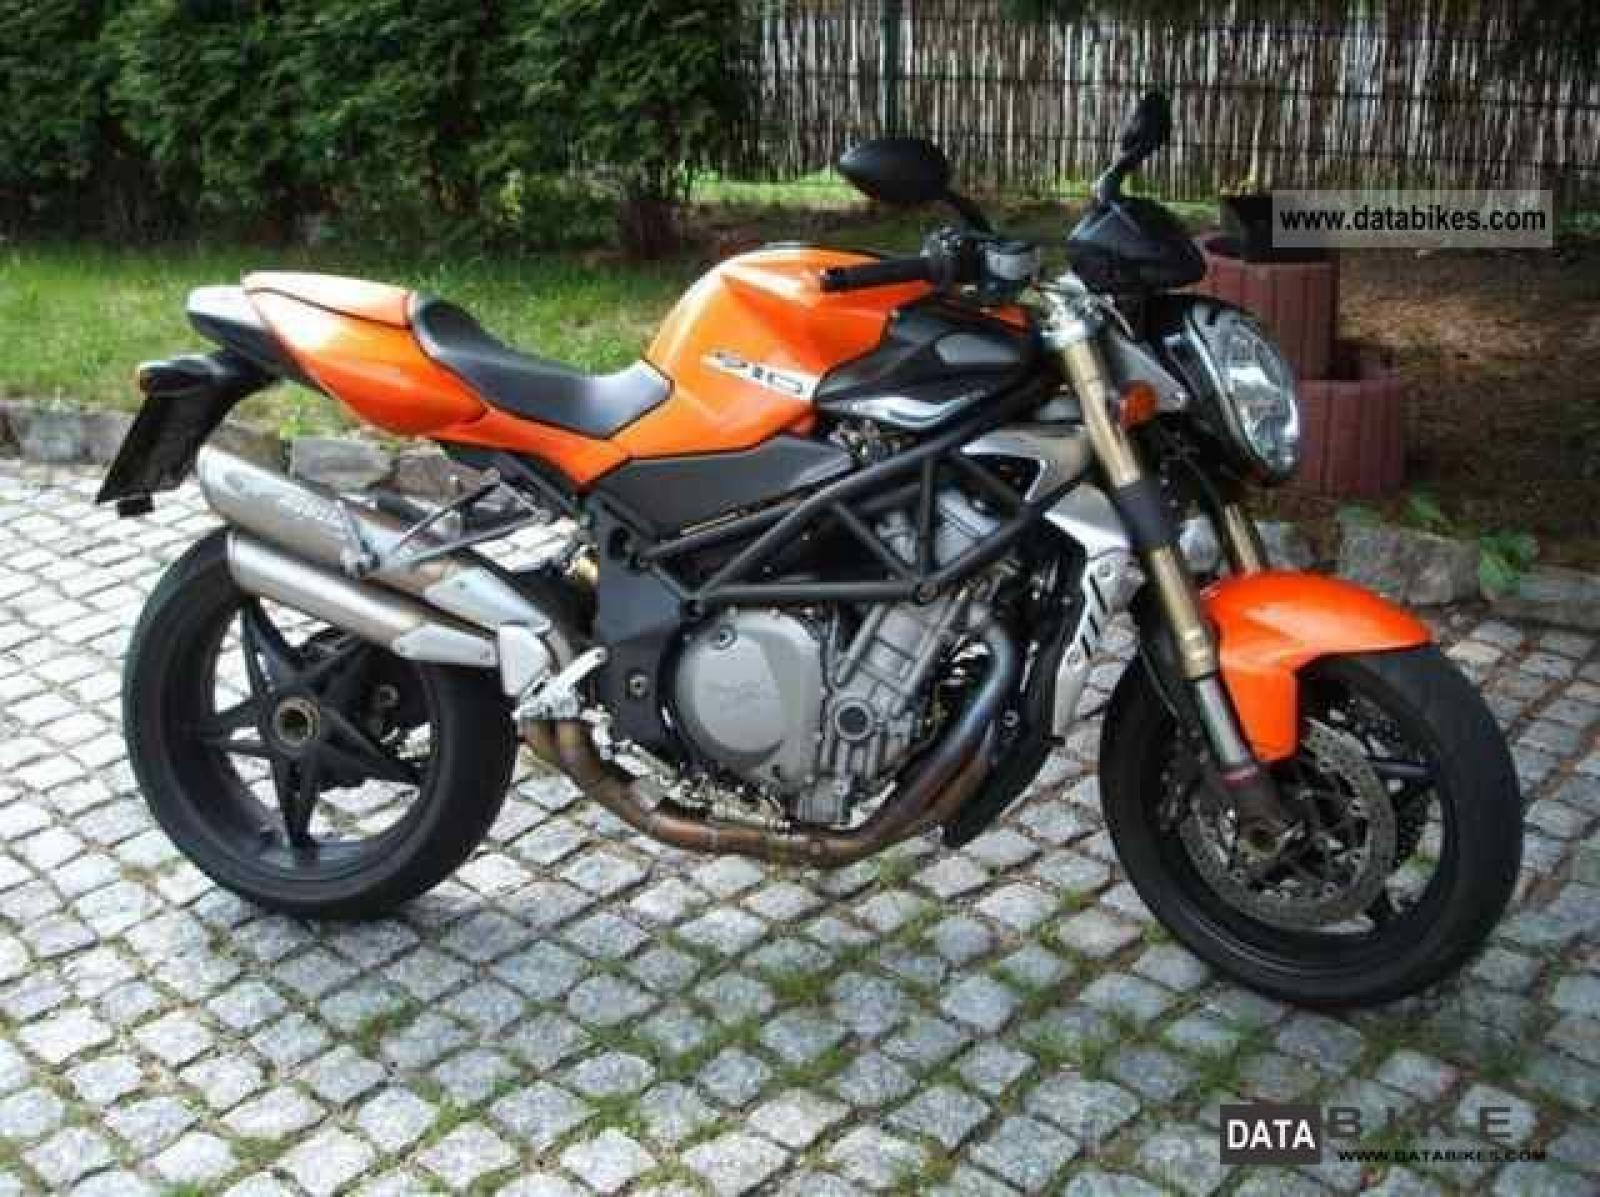 Mv Agusta Brutale 800 Seat Height